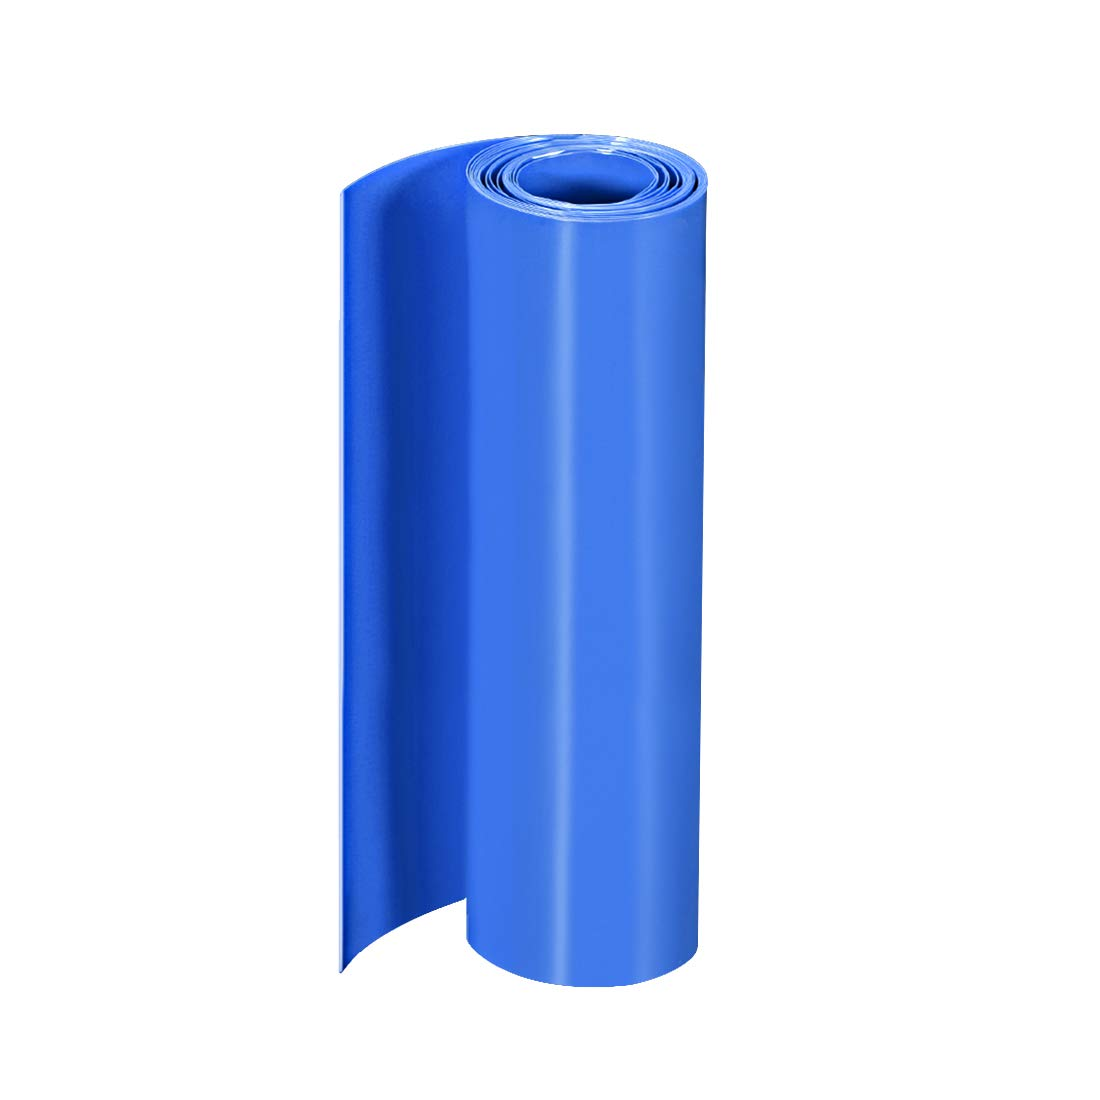 uxcell PVC Heat Shrink Tube 170mm Flat Width Wrap for Dual Layer 18650 2 Meter Blue